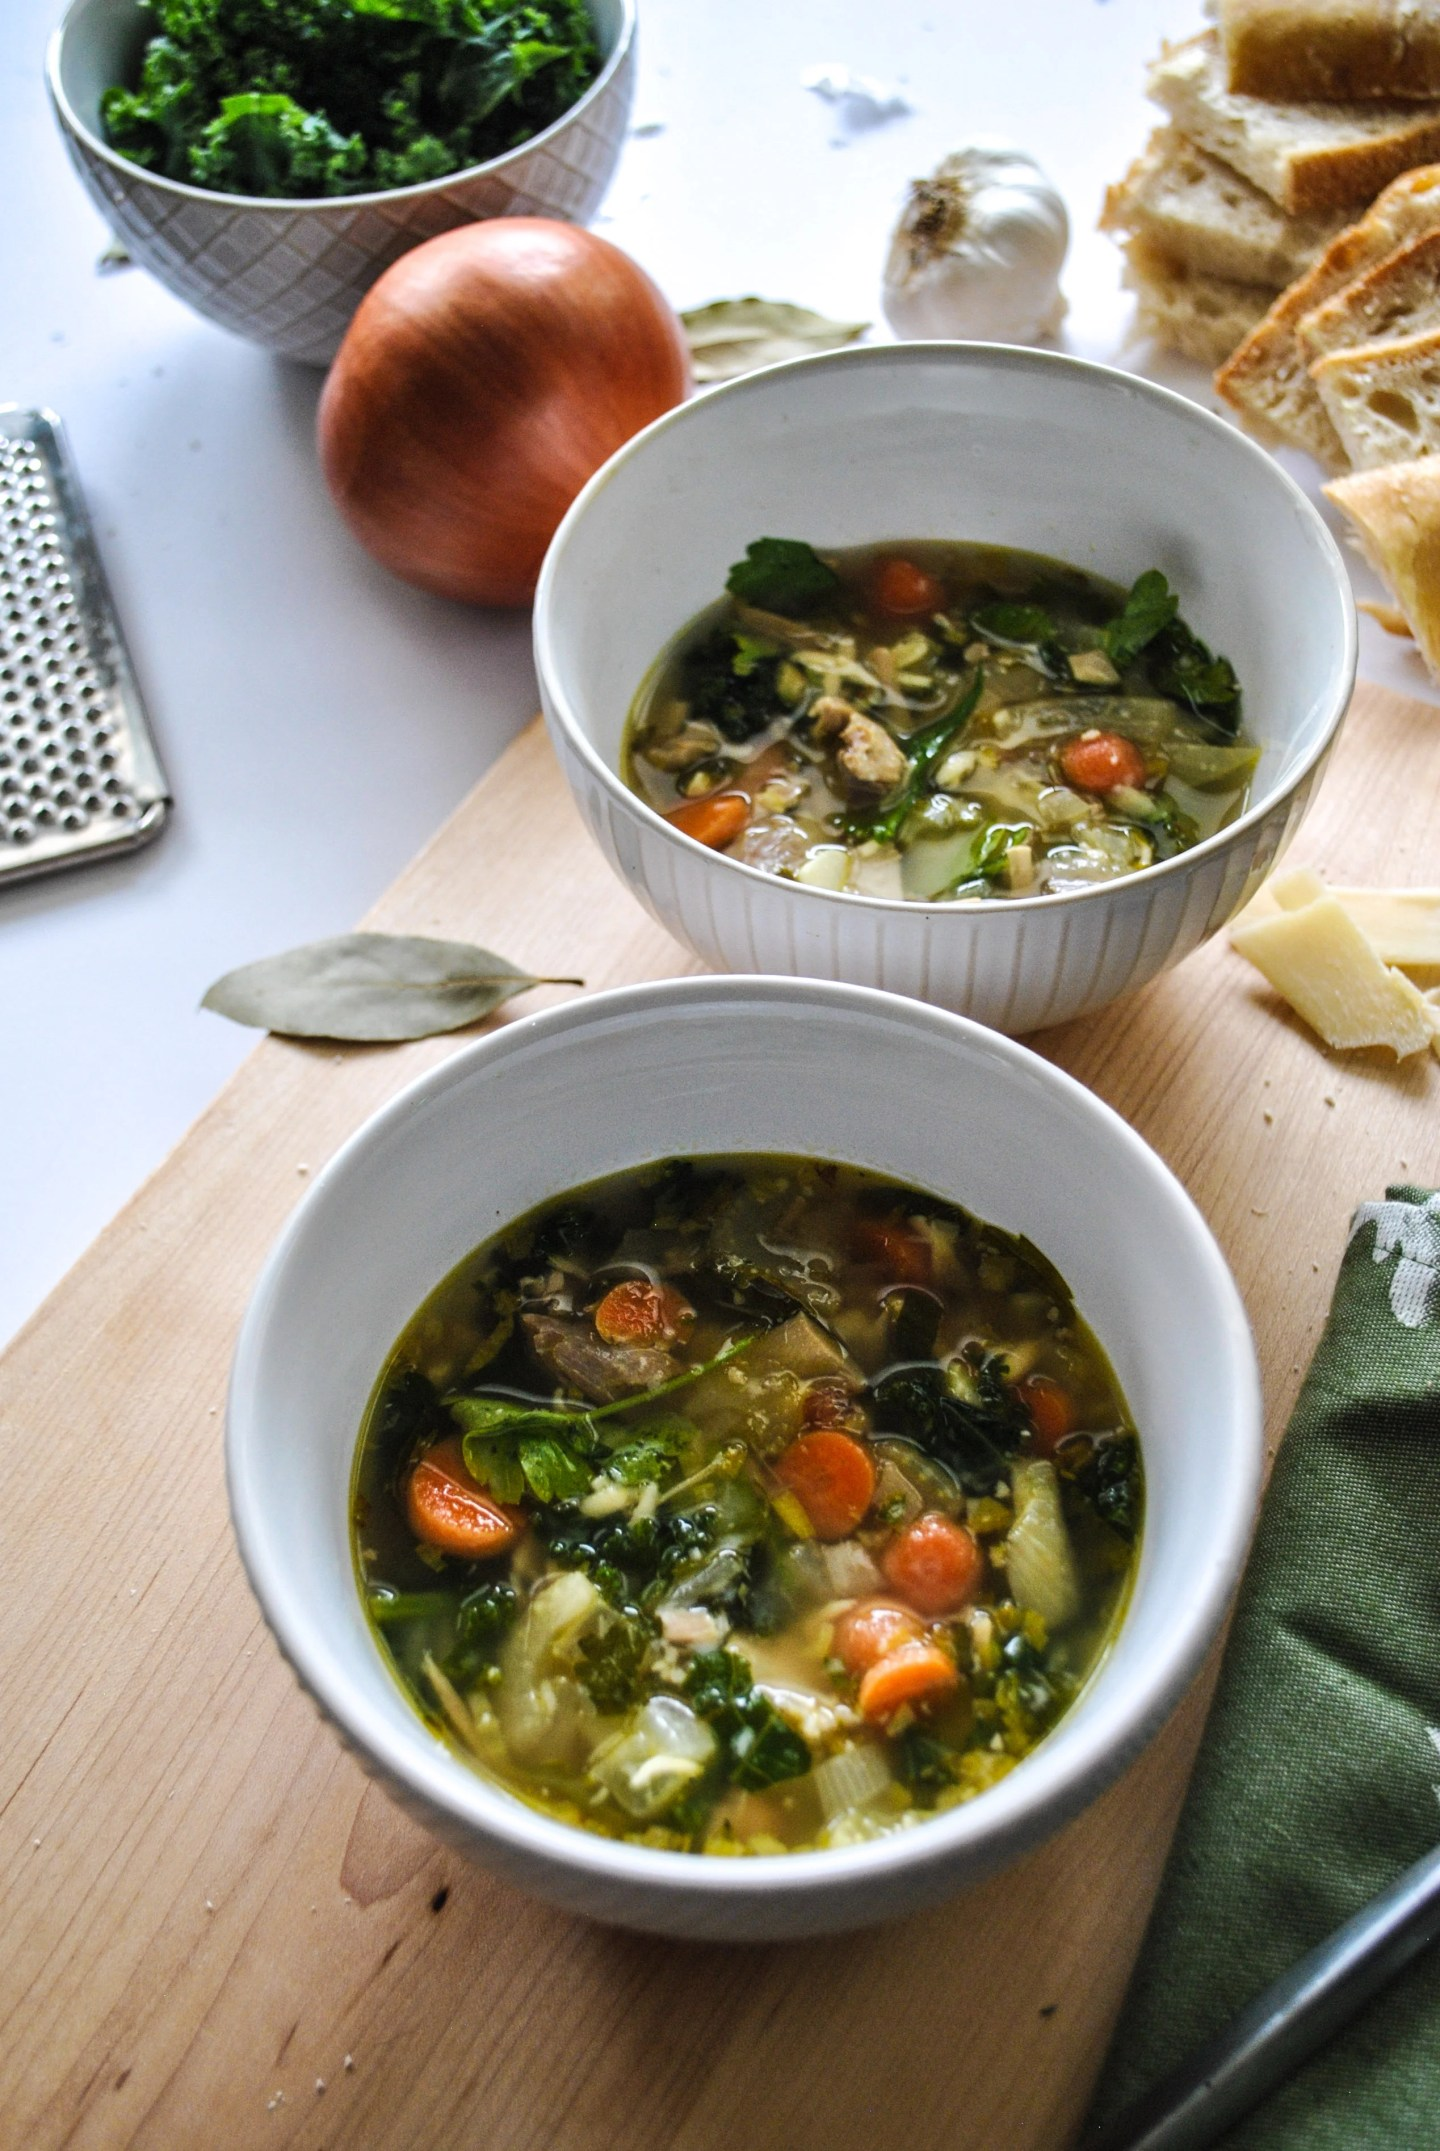 Lifestyle Blogger Jenny Meassick of Chocolate & Lace shares her recipe for Turkey Kale Soup